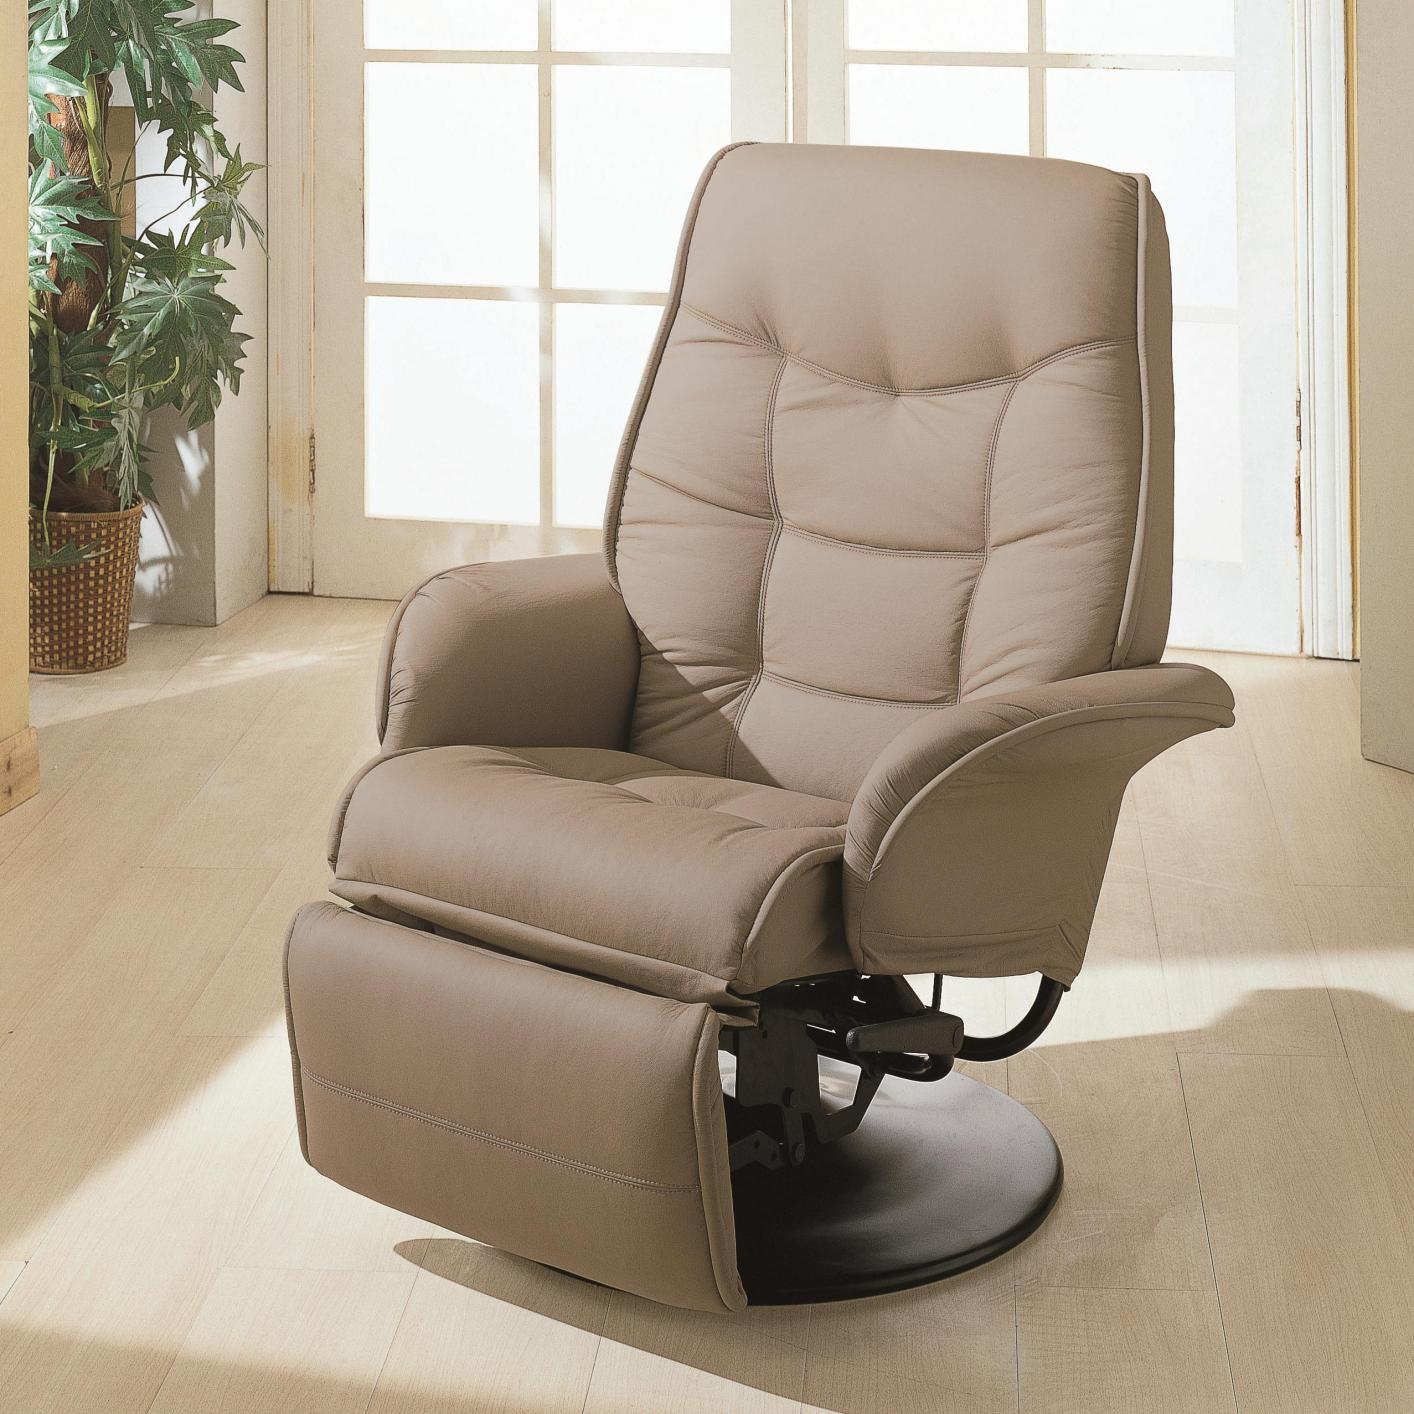 Beige Leather Reclining Chair Steal A Sofa Furniture Outlet Los